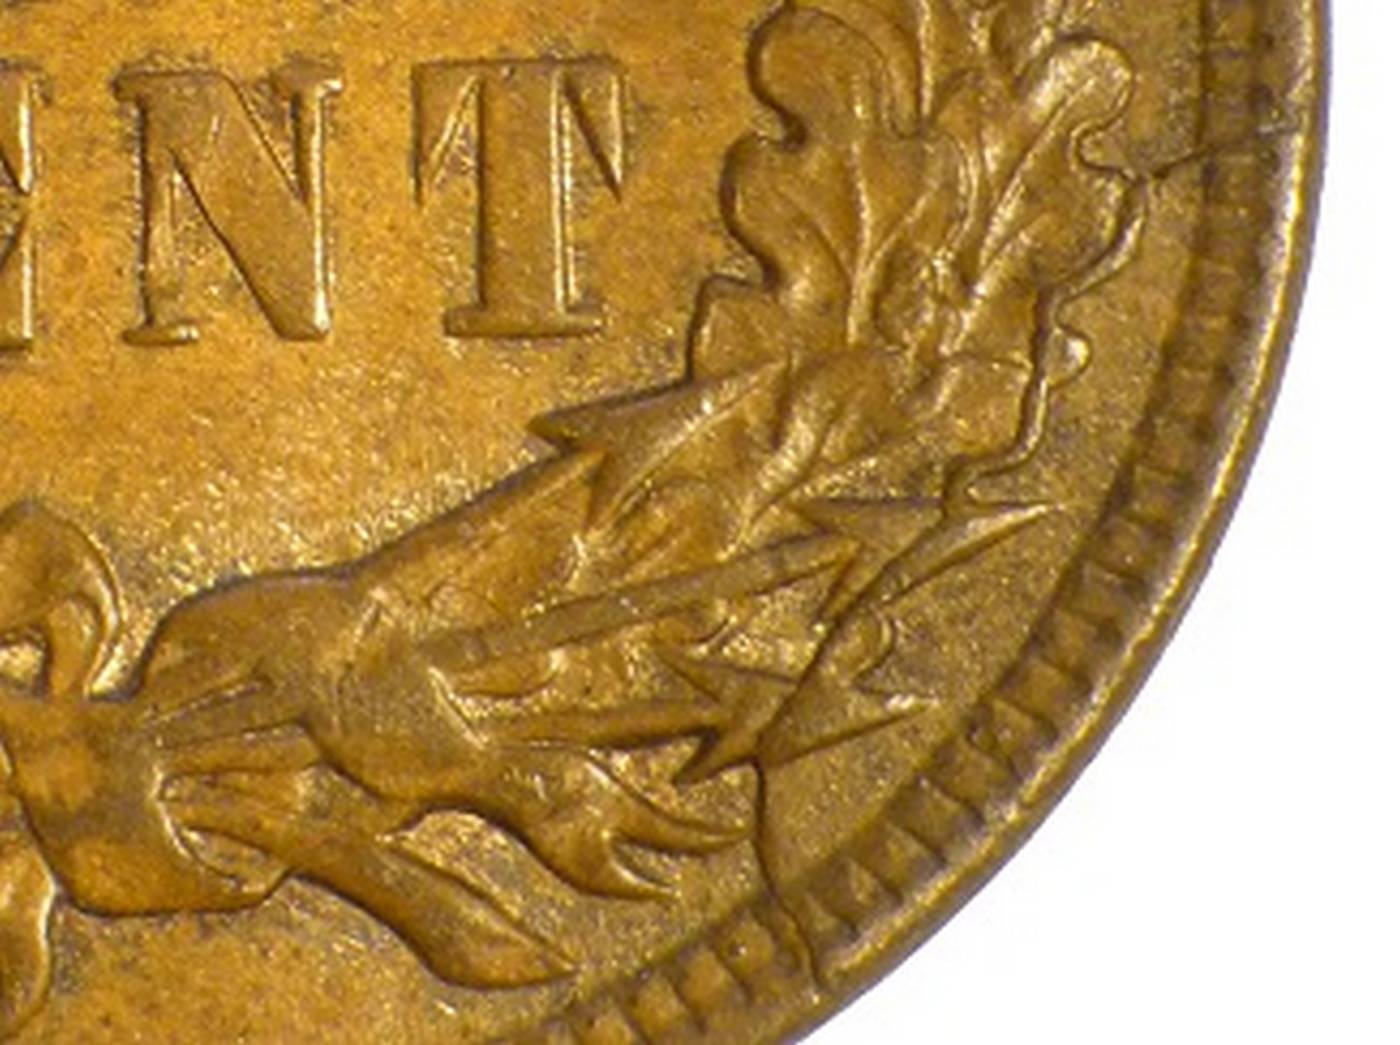 1907 CUD-002 - Indian Head Penny - Photo by David Poliquin